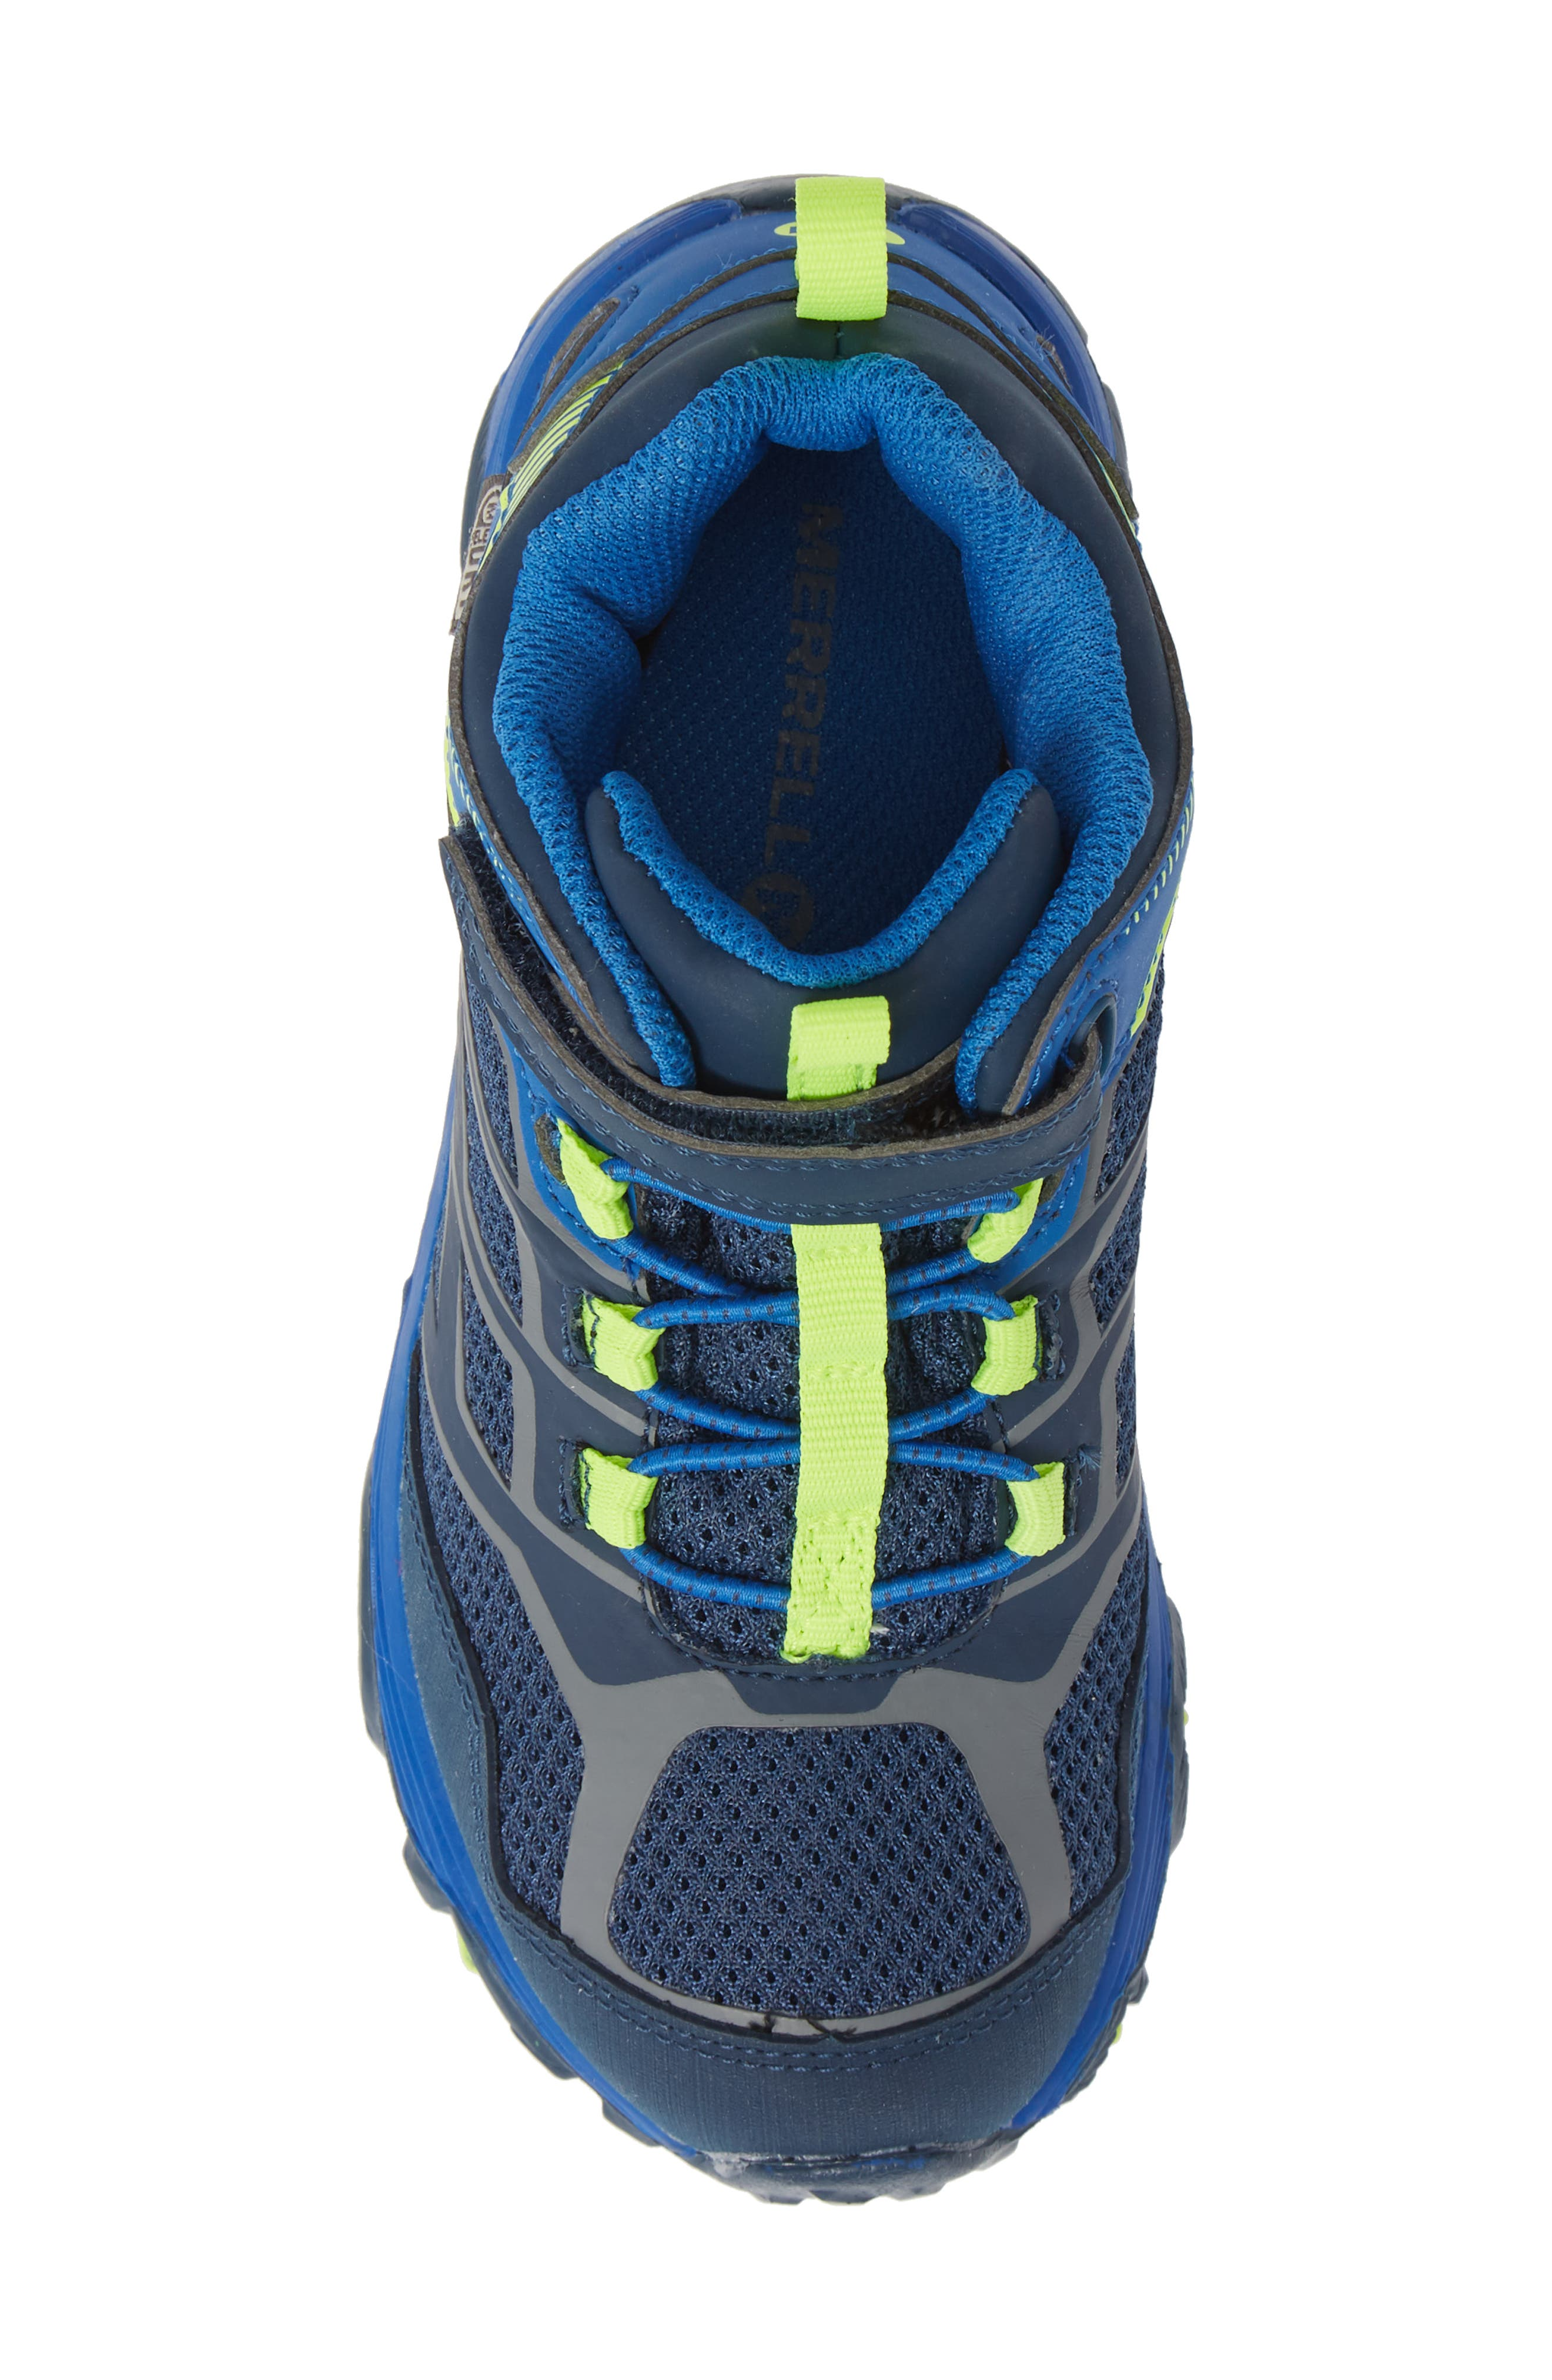 Moab FST Mid Top Waterproof Sneaker Boot,                             Alternate thumbnail 5, color,                             NAVY/ COBALT